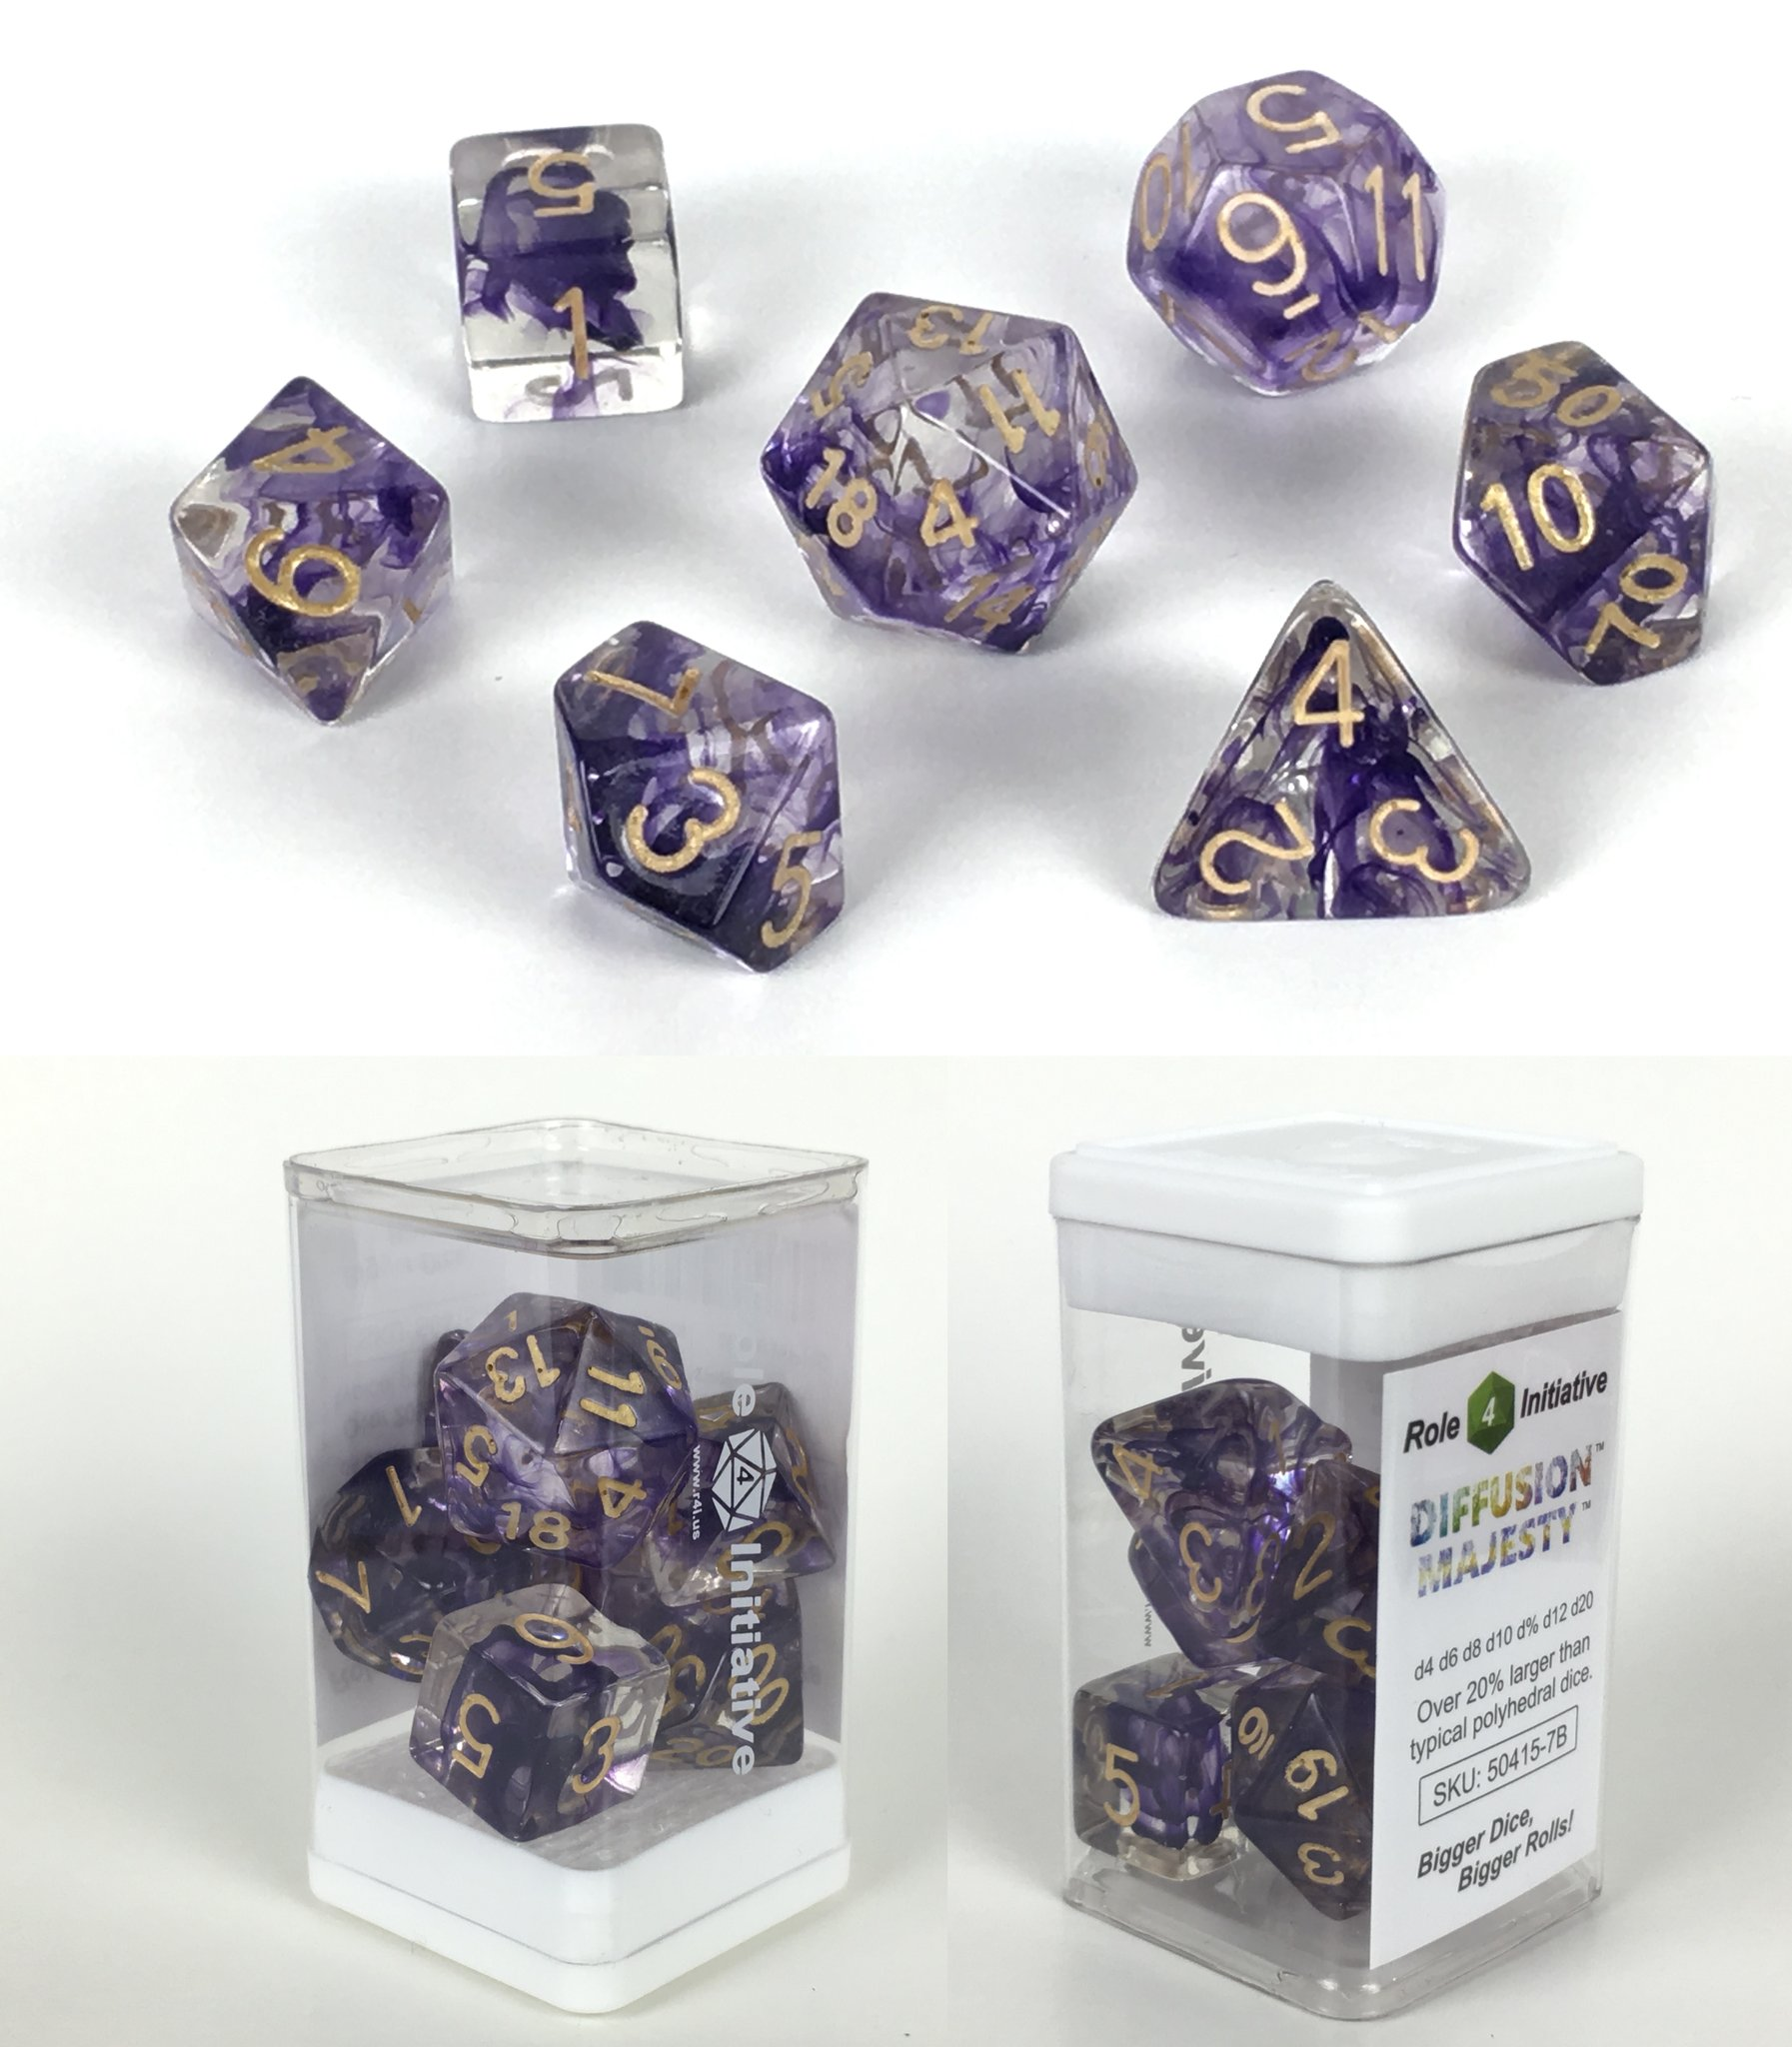 Role 4 Initiative Polyhedral 7 Dice Set: Diffusion Majesty